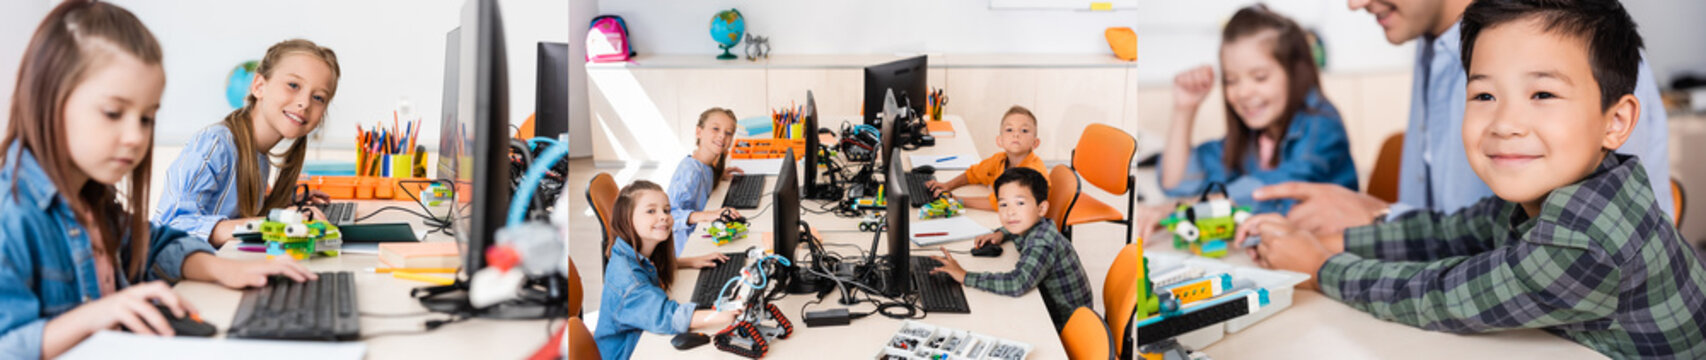 Collage of multiethnic schoolkids and teacher using computers near robots in stem school